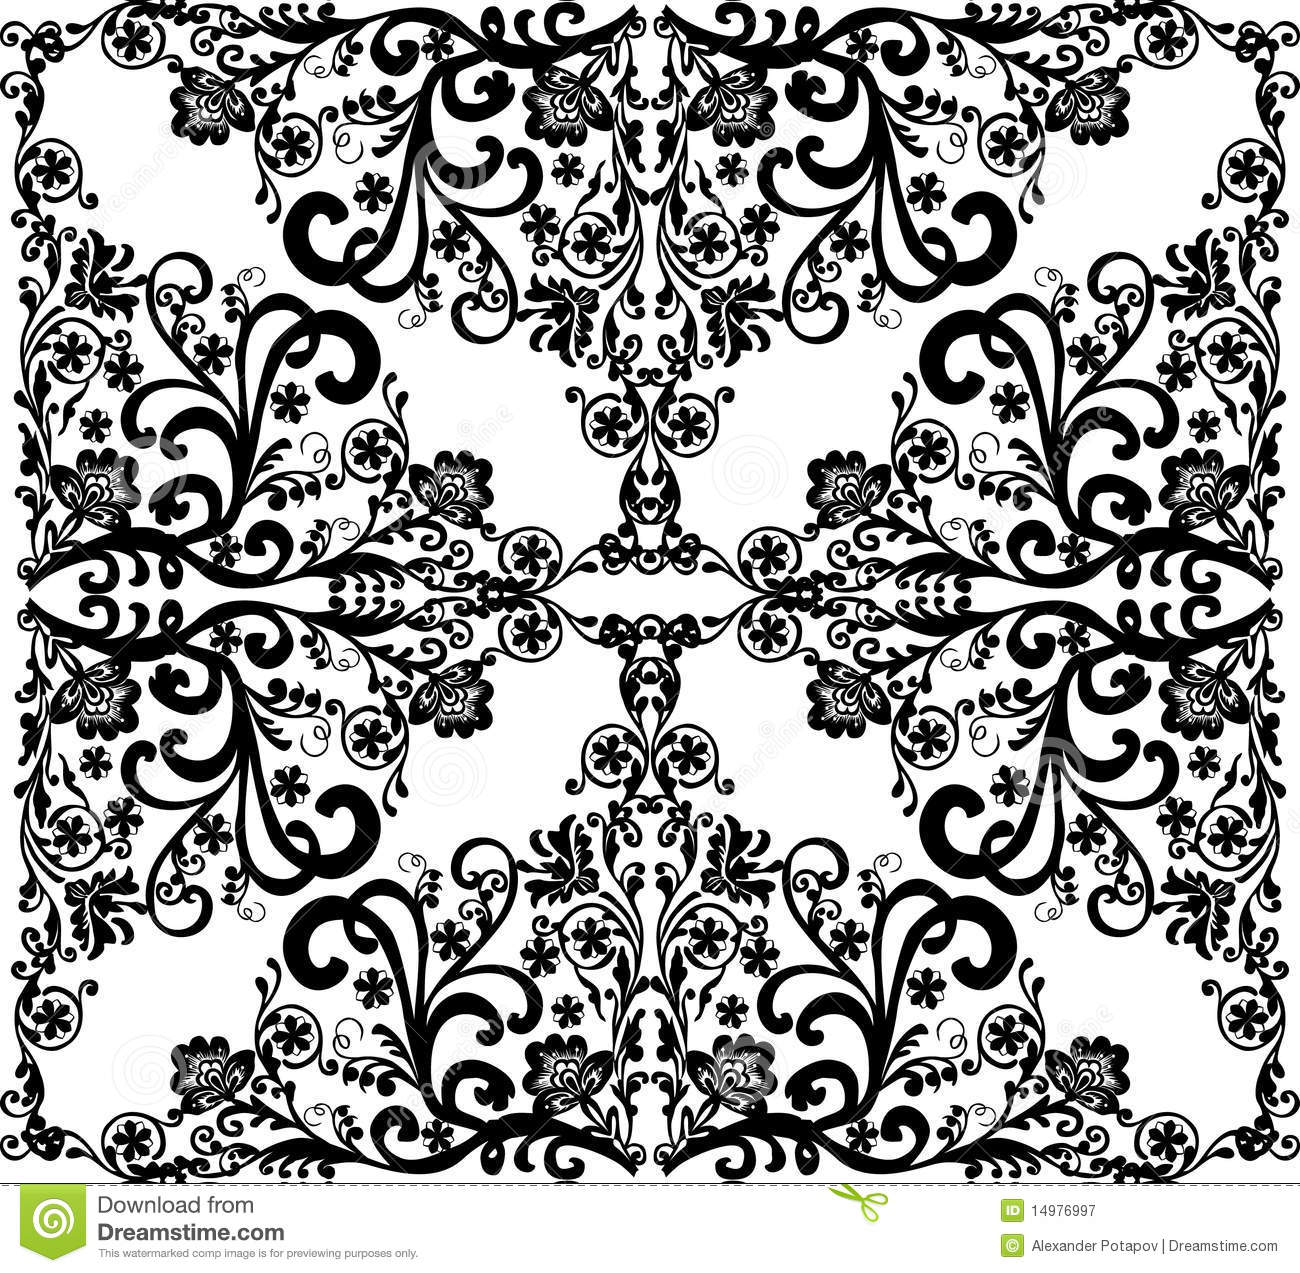 Square Black On White Floral Design Royalty Free Stock